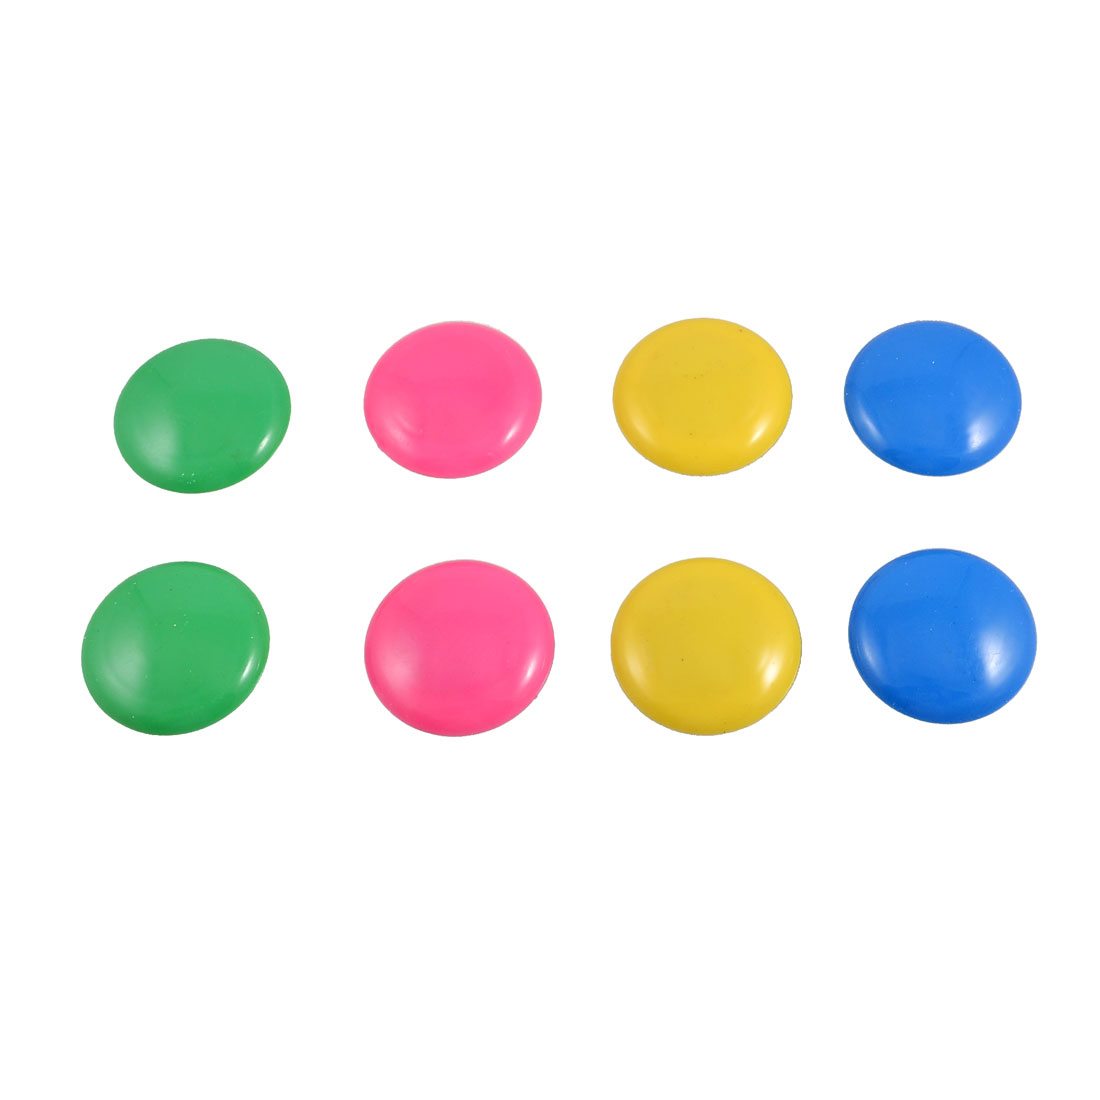 8 Pcs Whiteboard Assorted Colors Round Plastic Magnetic Button